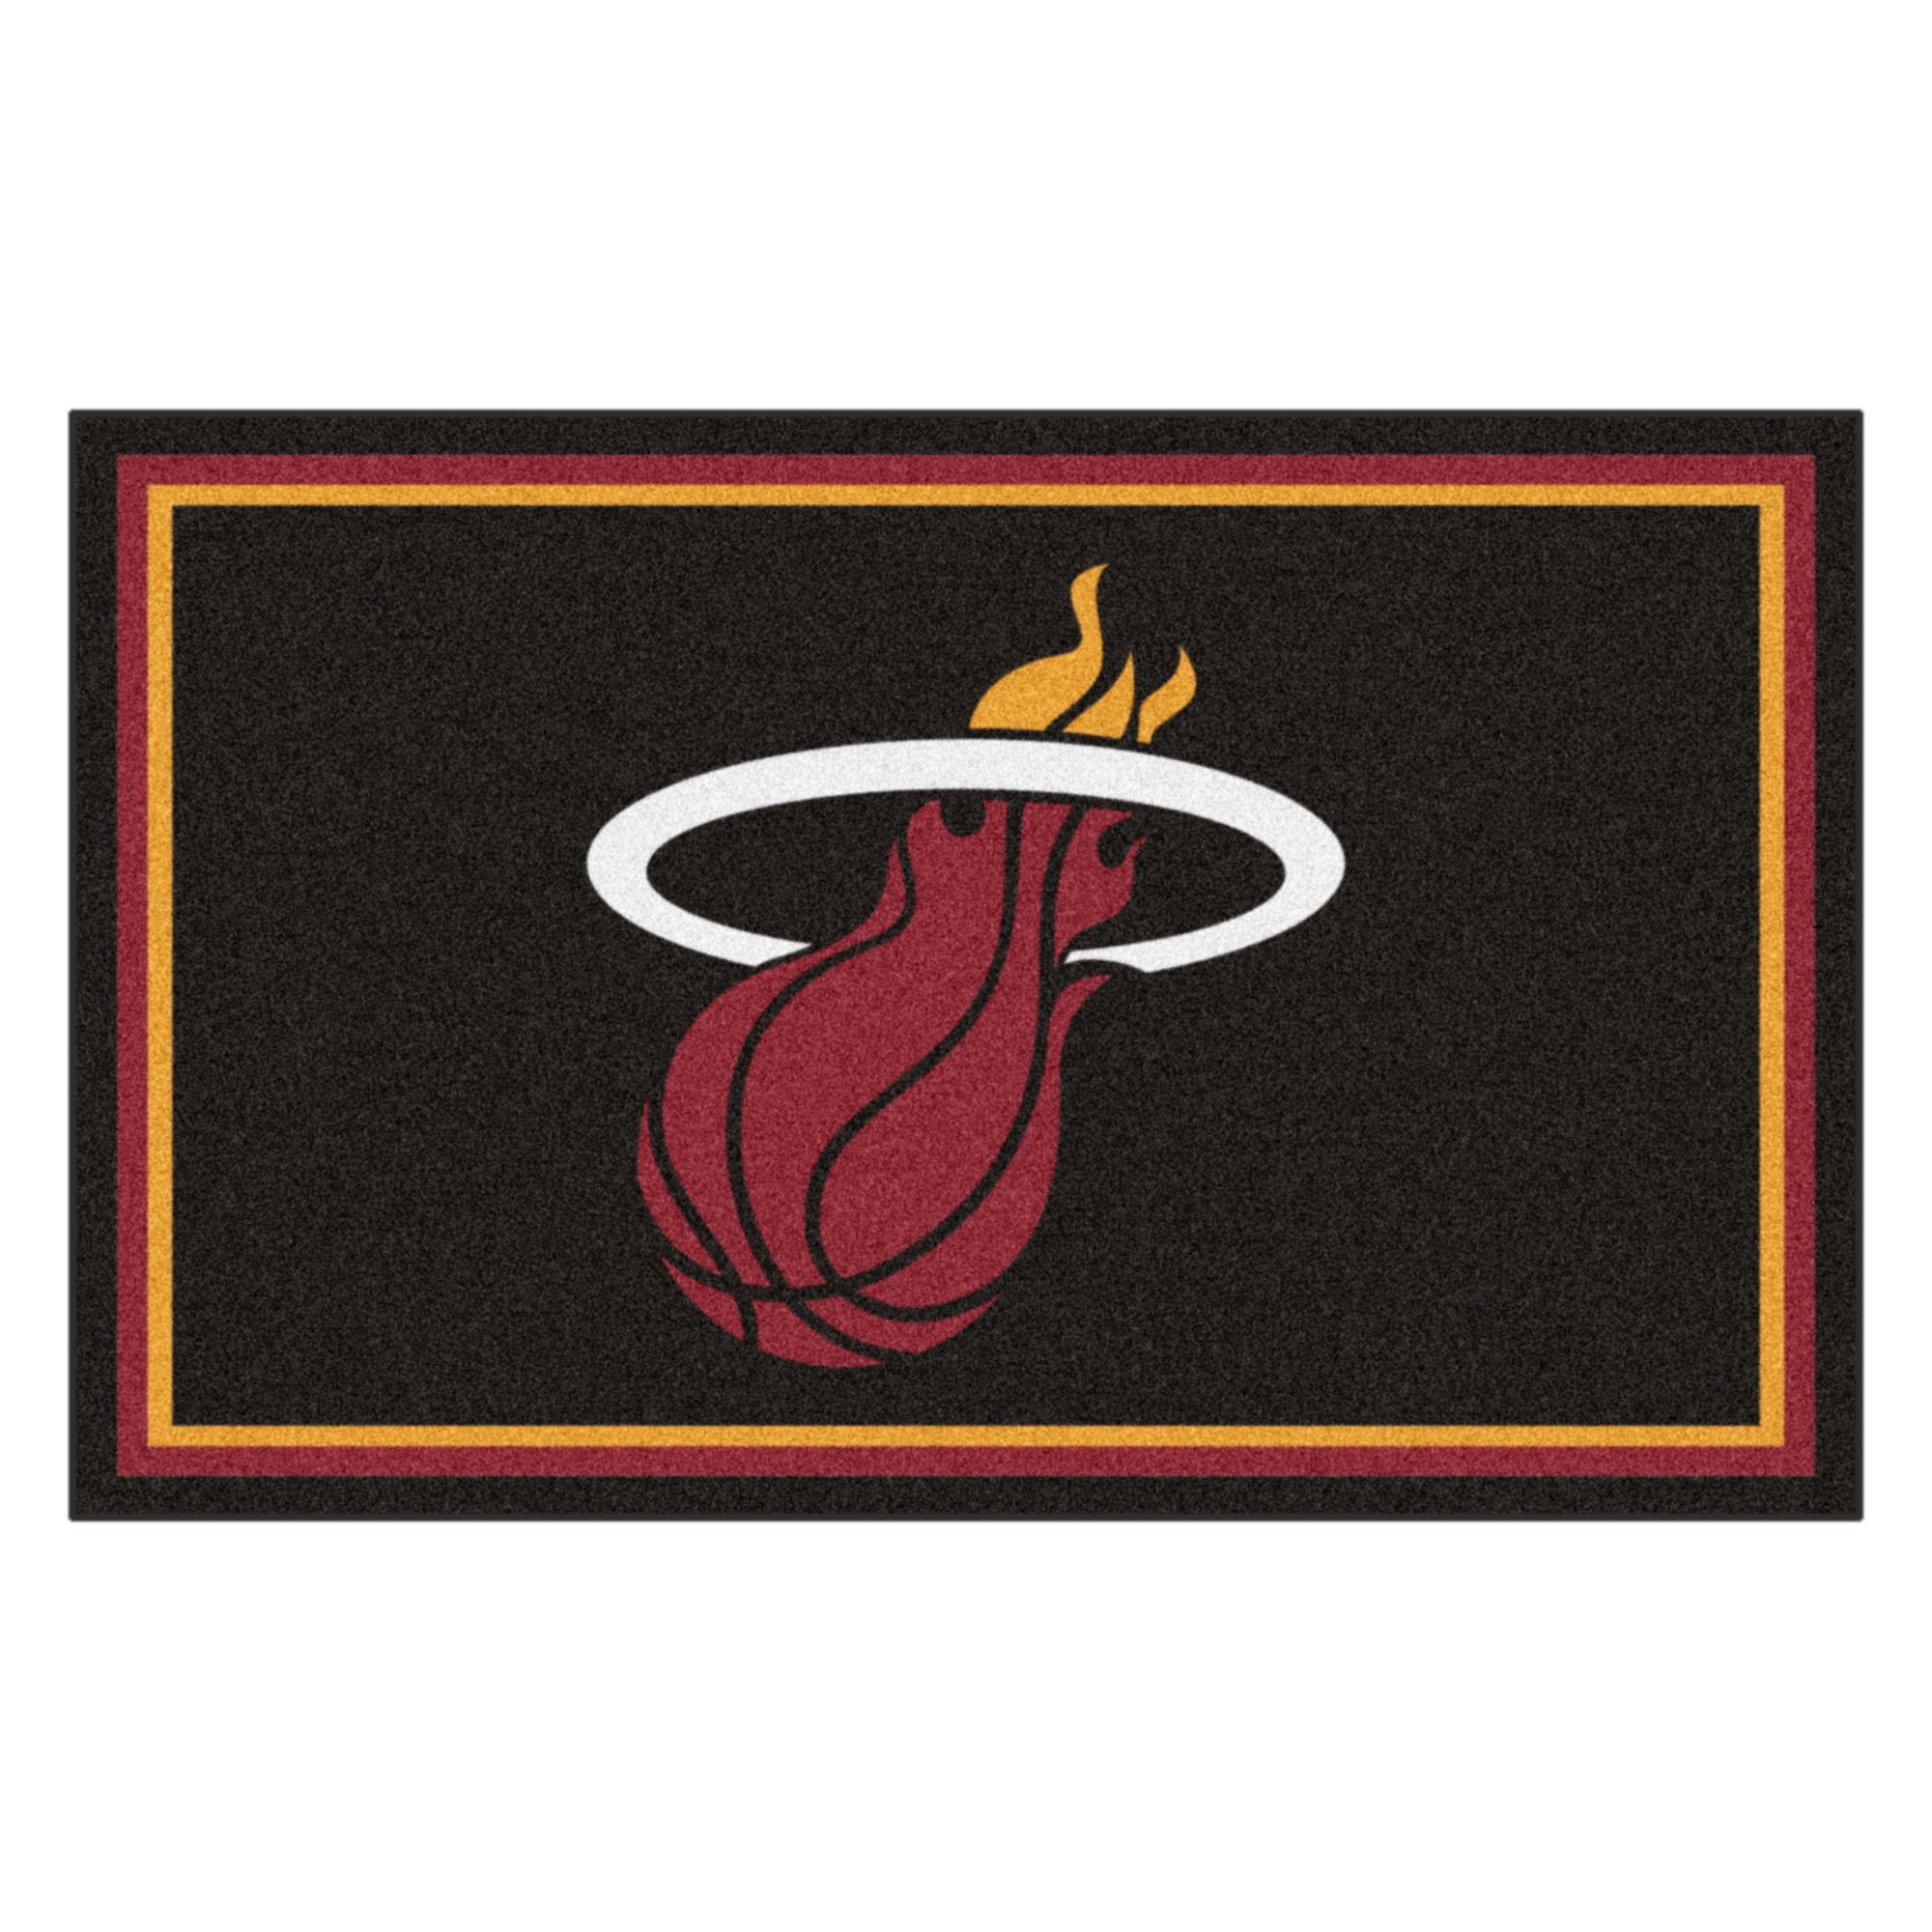 FANMATS 20433 44''x71'' Team Color NBA - Miami Heat Rug by Fanmats